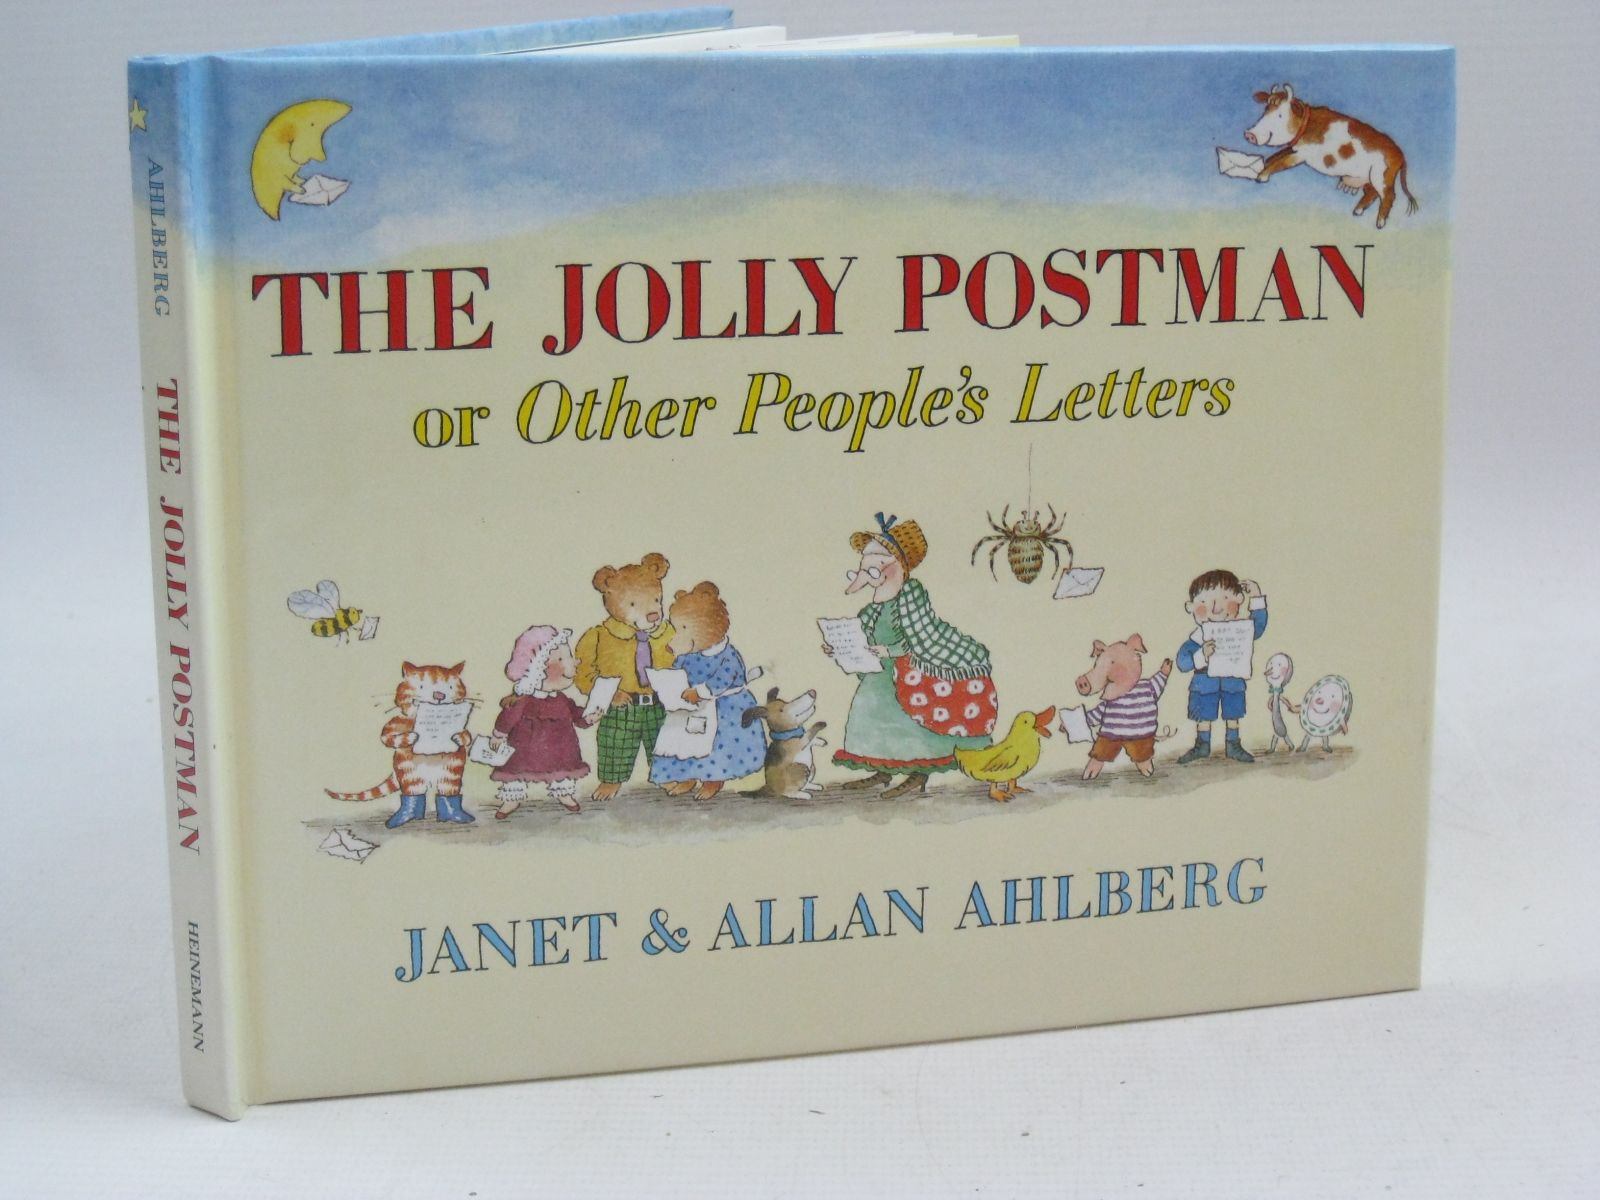 Photo of THE JOLLY POSTMAN OR OTHER PEOPLE'S LETTERS written by Ahlberg, Allan illustrated by Ahlberg, Janet published by Heinemann (STOCK CODE: 1405160)  for sale by Stella & Rose's Books